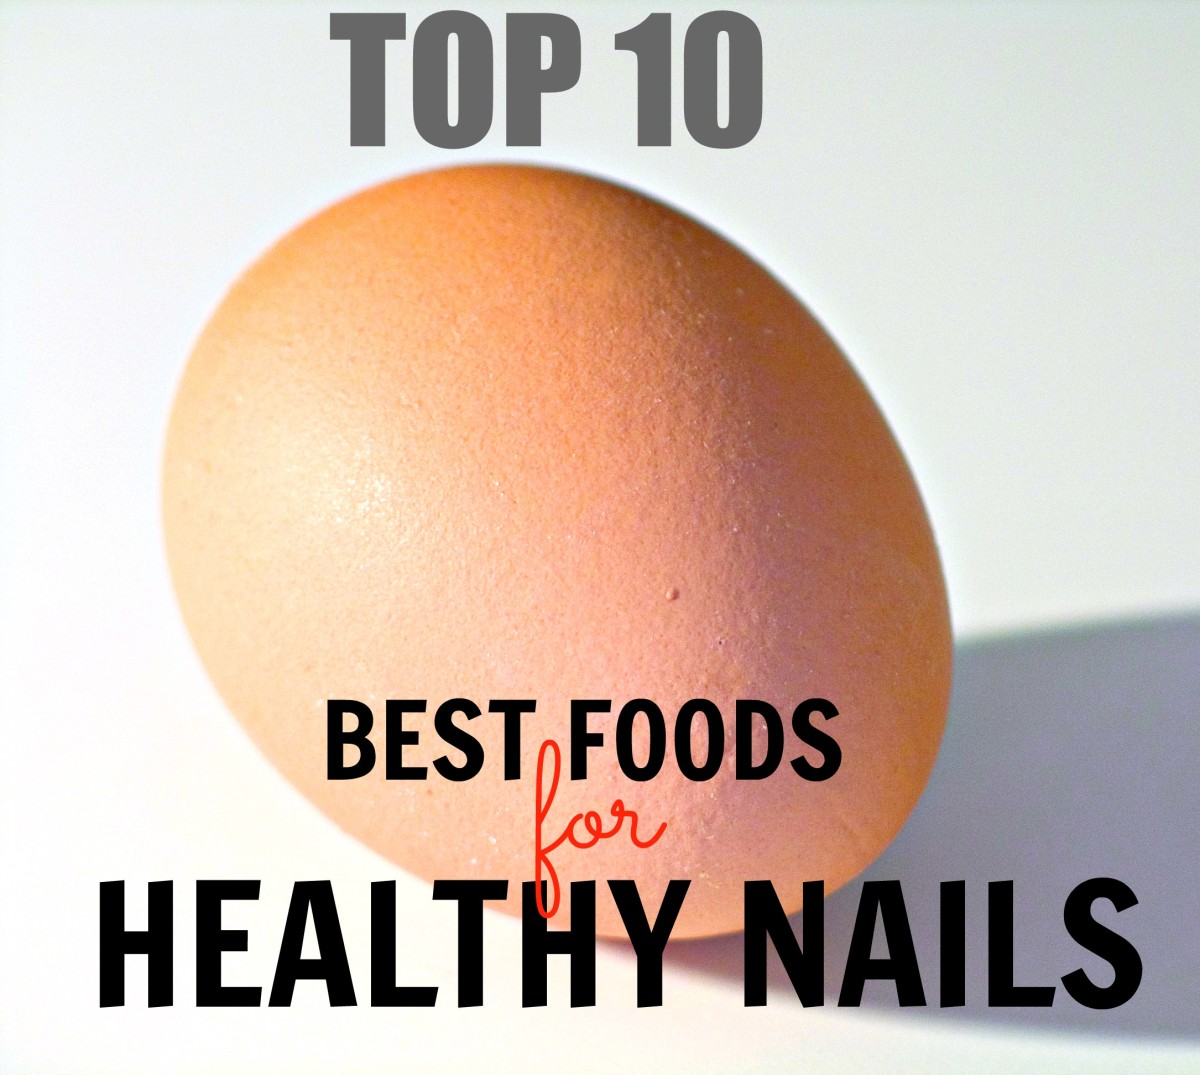 Nails are made of keratin, a protein, which is why a protein-rich diet is important to maintain nail health. If you eat meat, eggs, or other protein-rich foods regularly, there's no need to worry. But if you don't eat meat, add these vegetarian protein sources to your diet, .